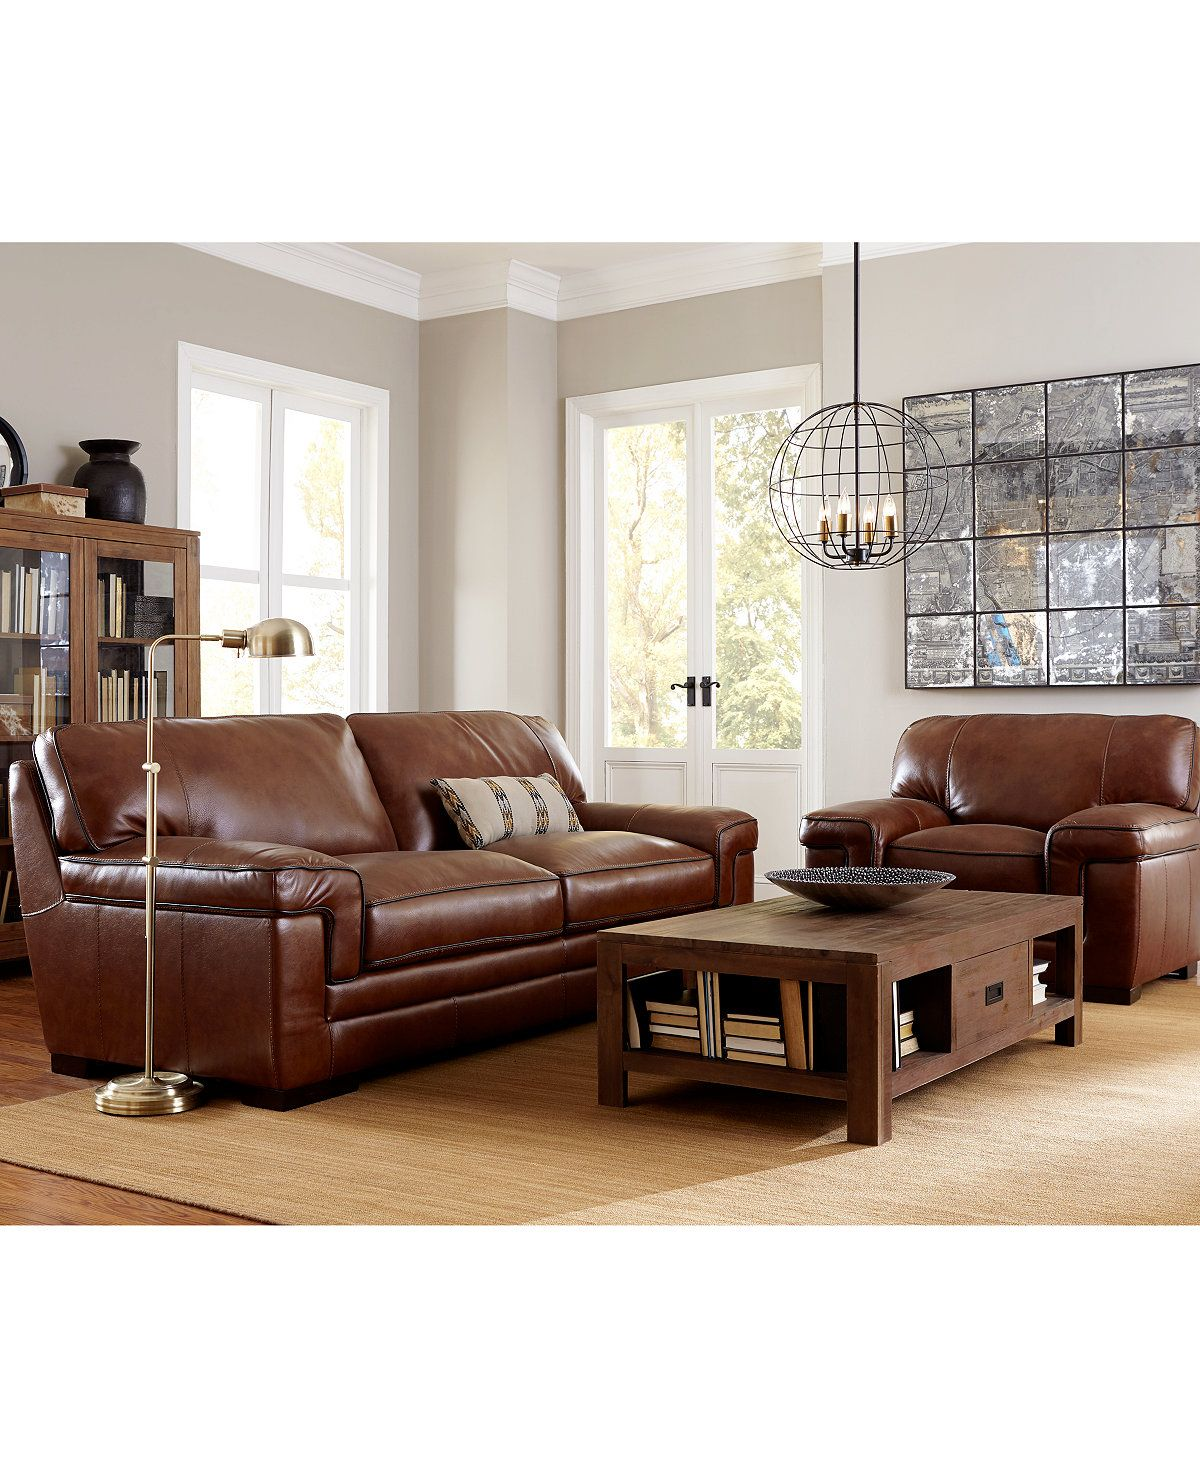 Admirable Myars 91 Leather Sofa Oakland Living Leather Sofa Lamtechconsult Wood Chair Design Ideas Lamtechconsultcom